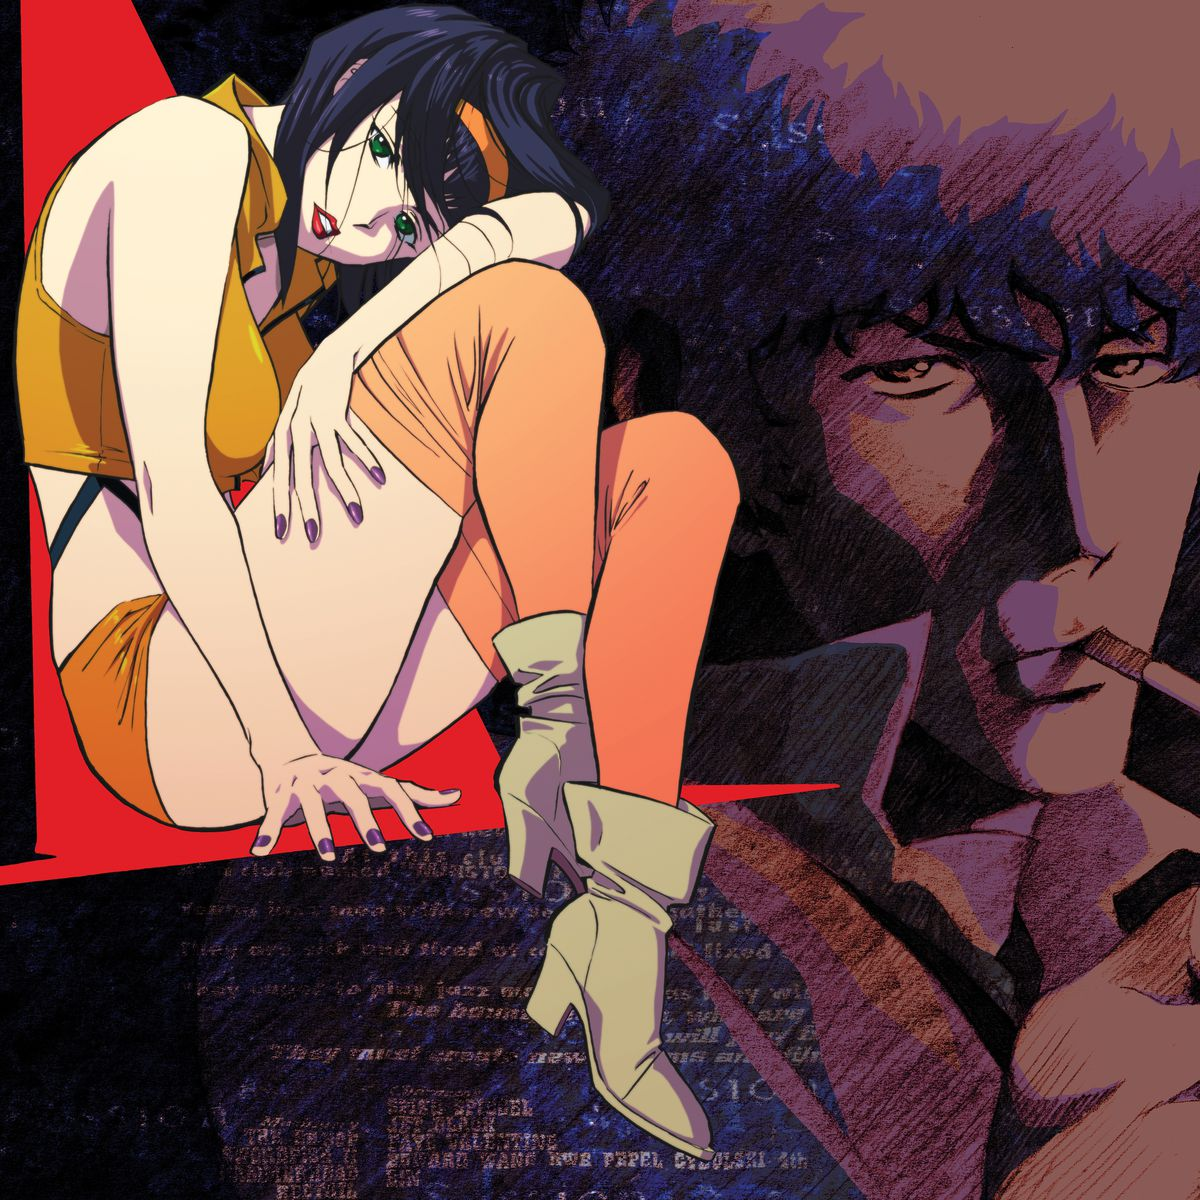 cover artwork for the vinyl LP set Cowboy Bebop (Original Series Soundtrack), featuring Faye Valentine sitting on the left and Spike Spiegel smoking on the right